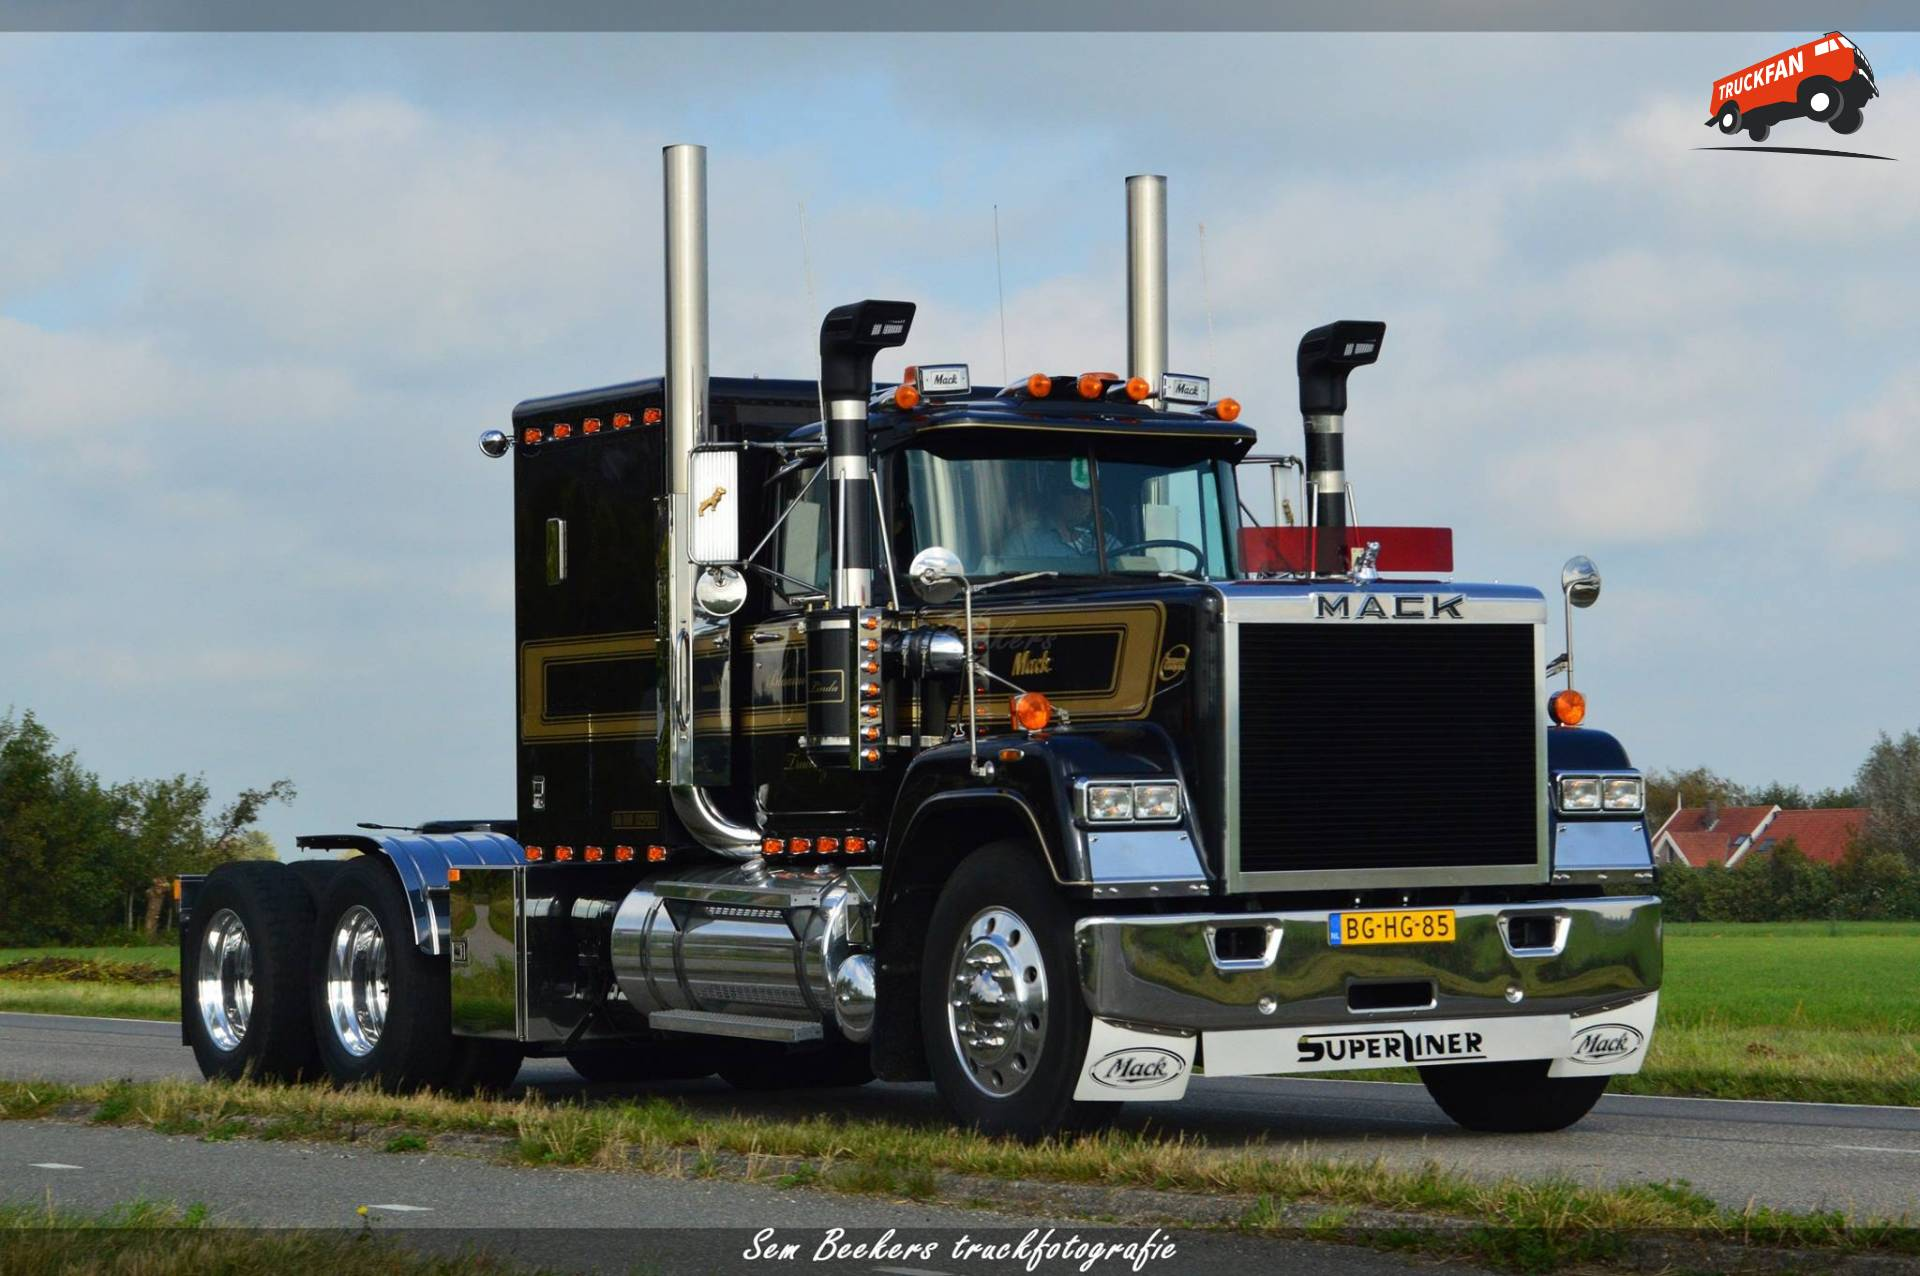 mack RW (Superliner)